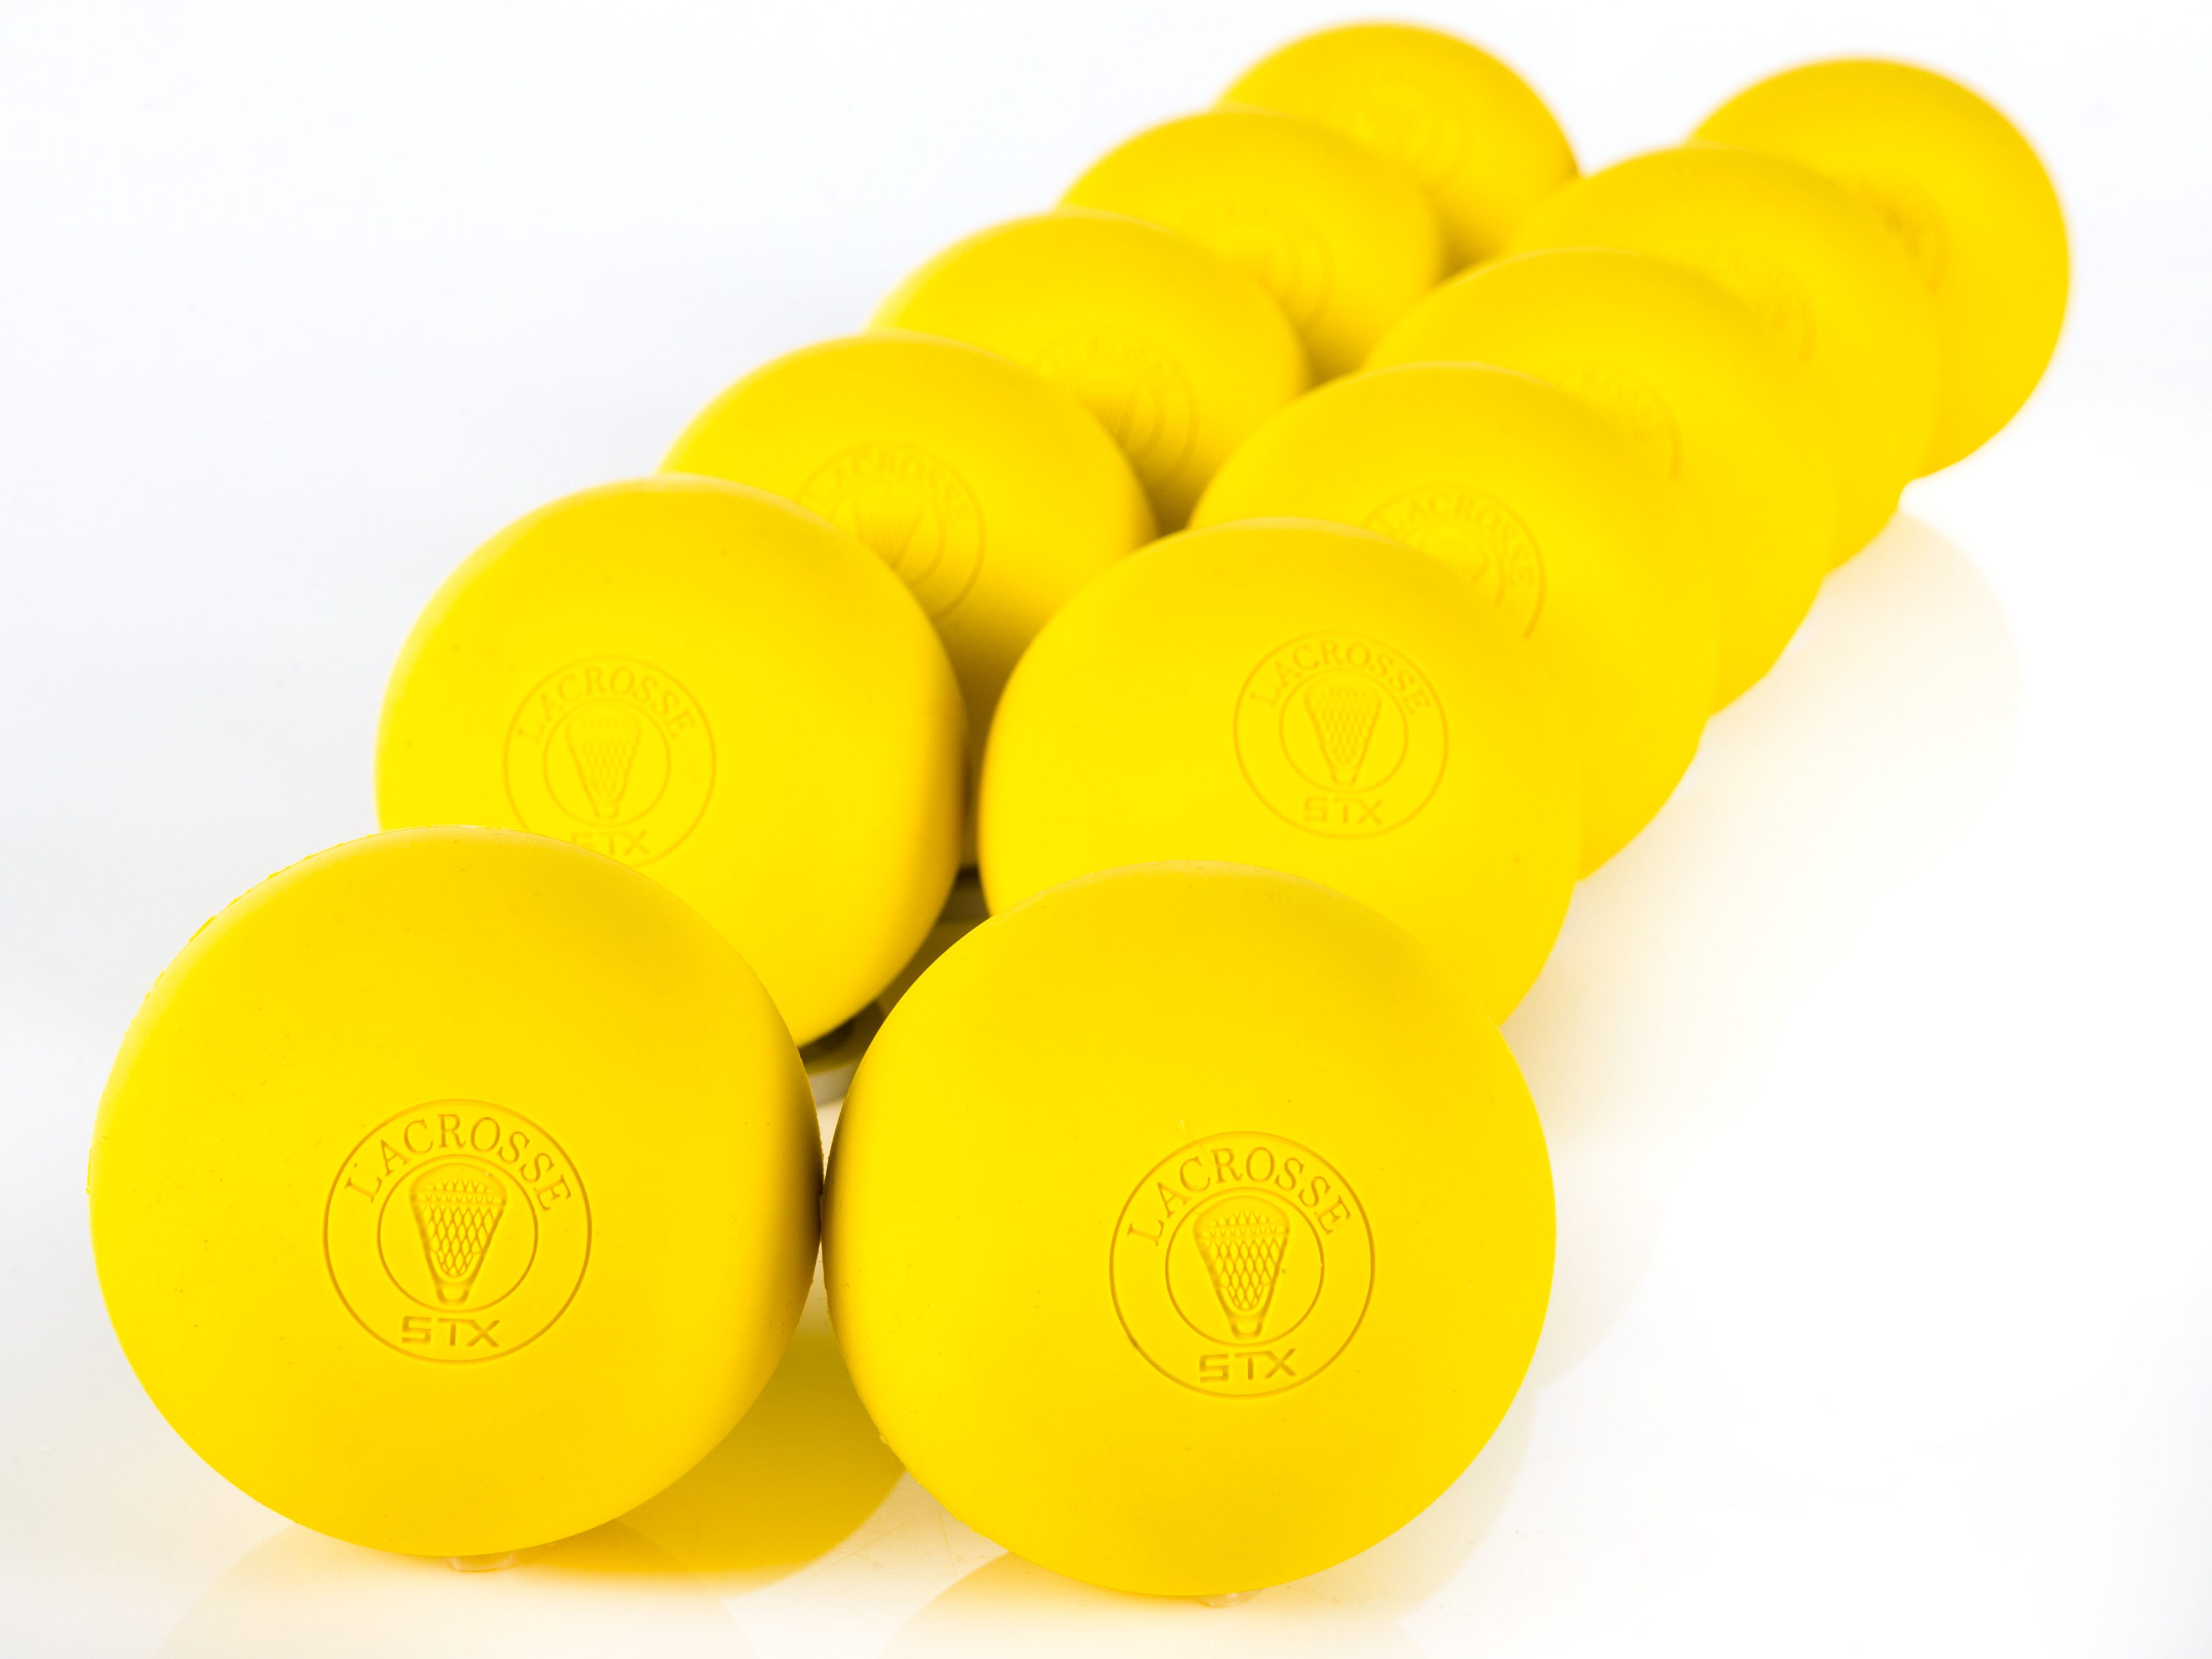 Official NOCSAE-Approved Lacrosse Balls